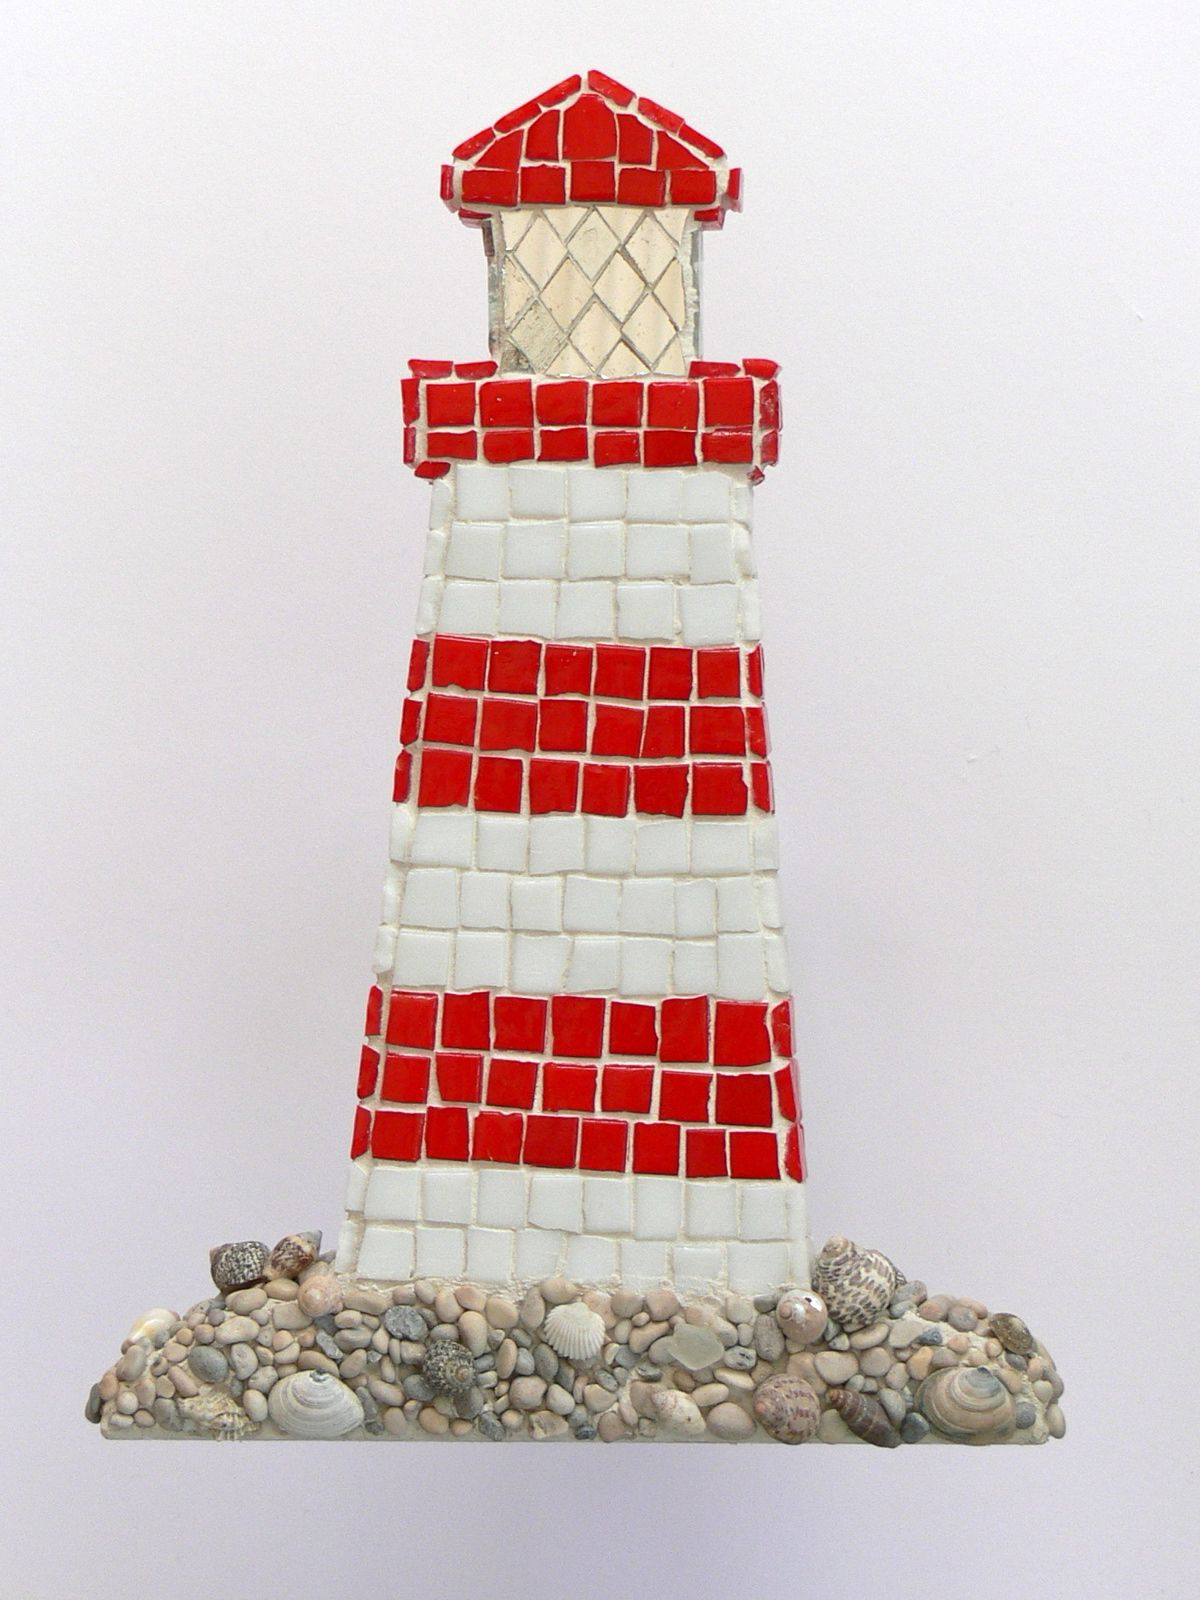 Red And White Lighthouse Mosaic Wall Art By Rana Cullimore Www